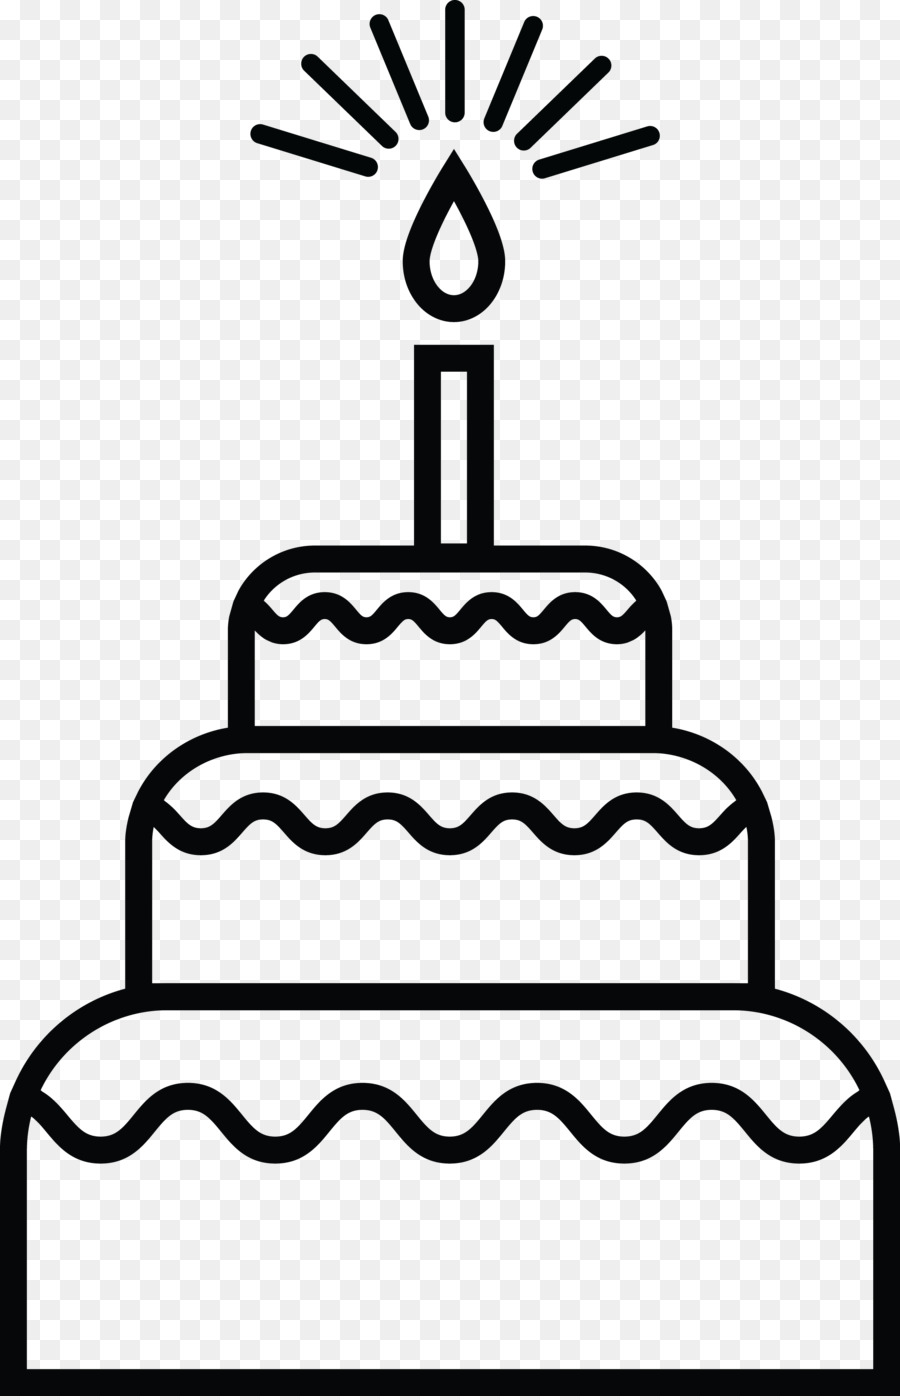 Birthday Cake Christmas Cake Clip Art Cake Png Download 2252